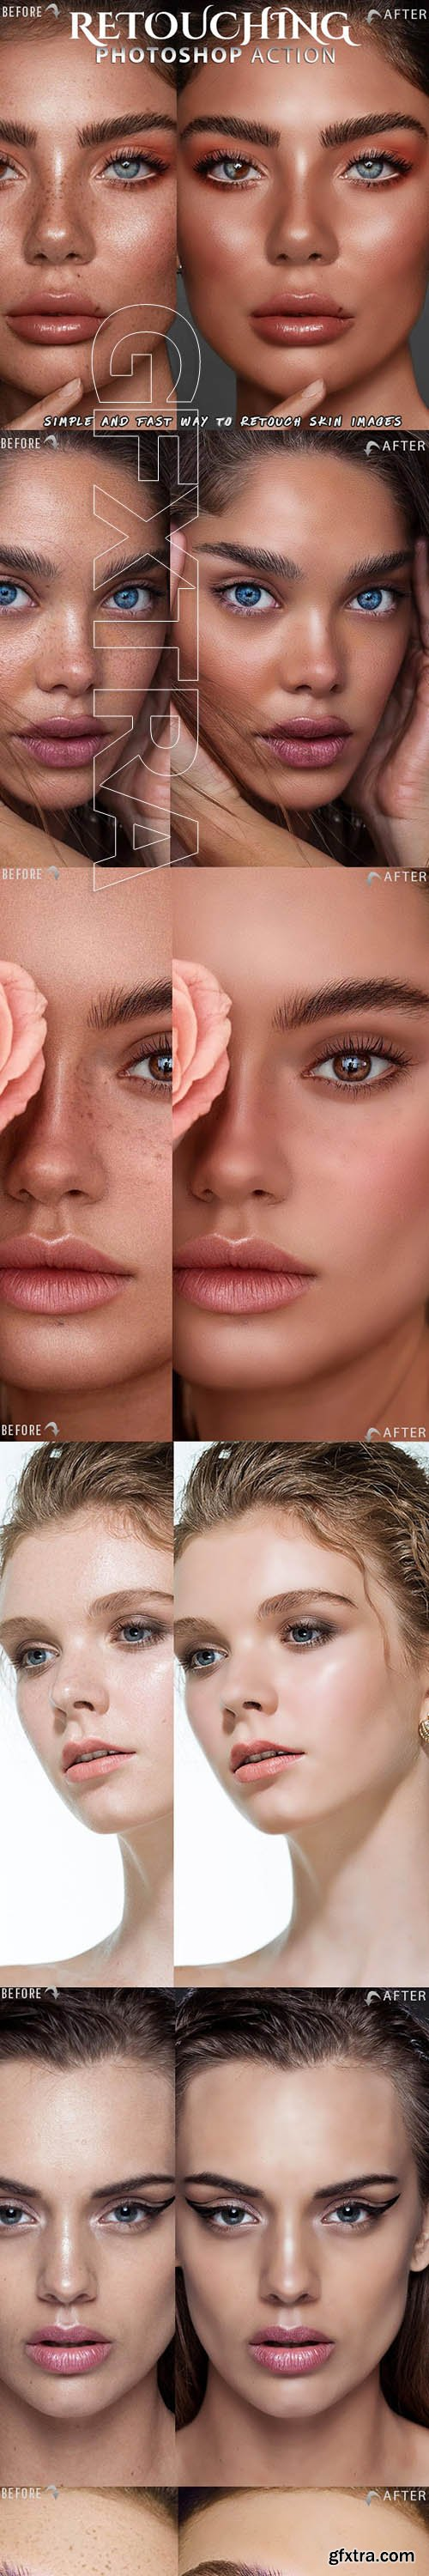 GraphicRiver - Skin Retouch Photoshop Action 25828641